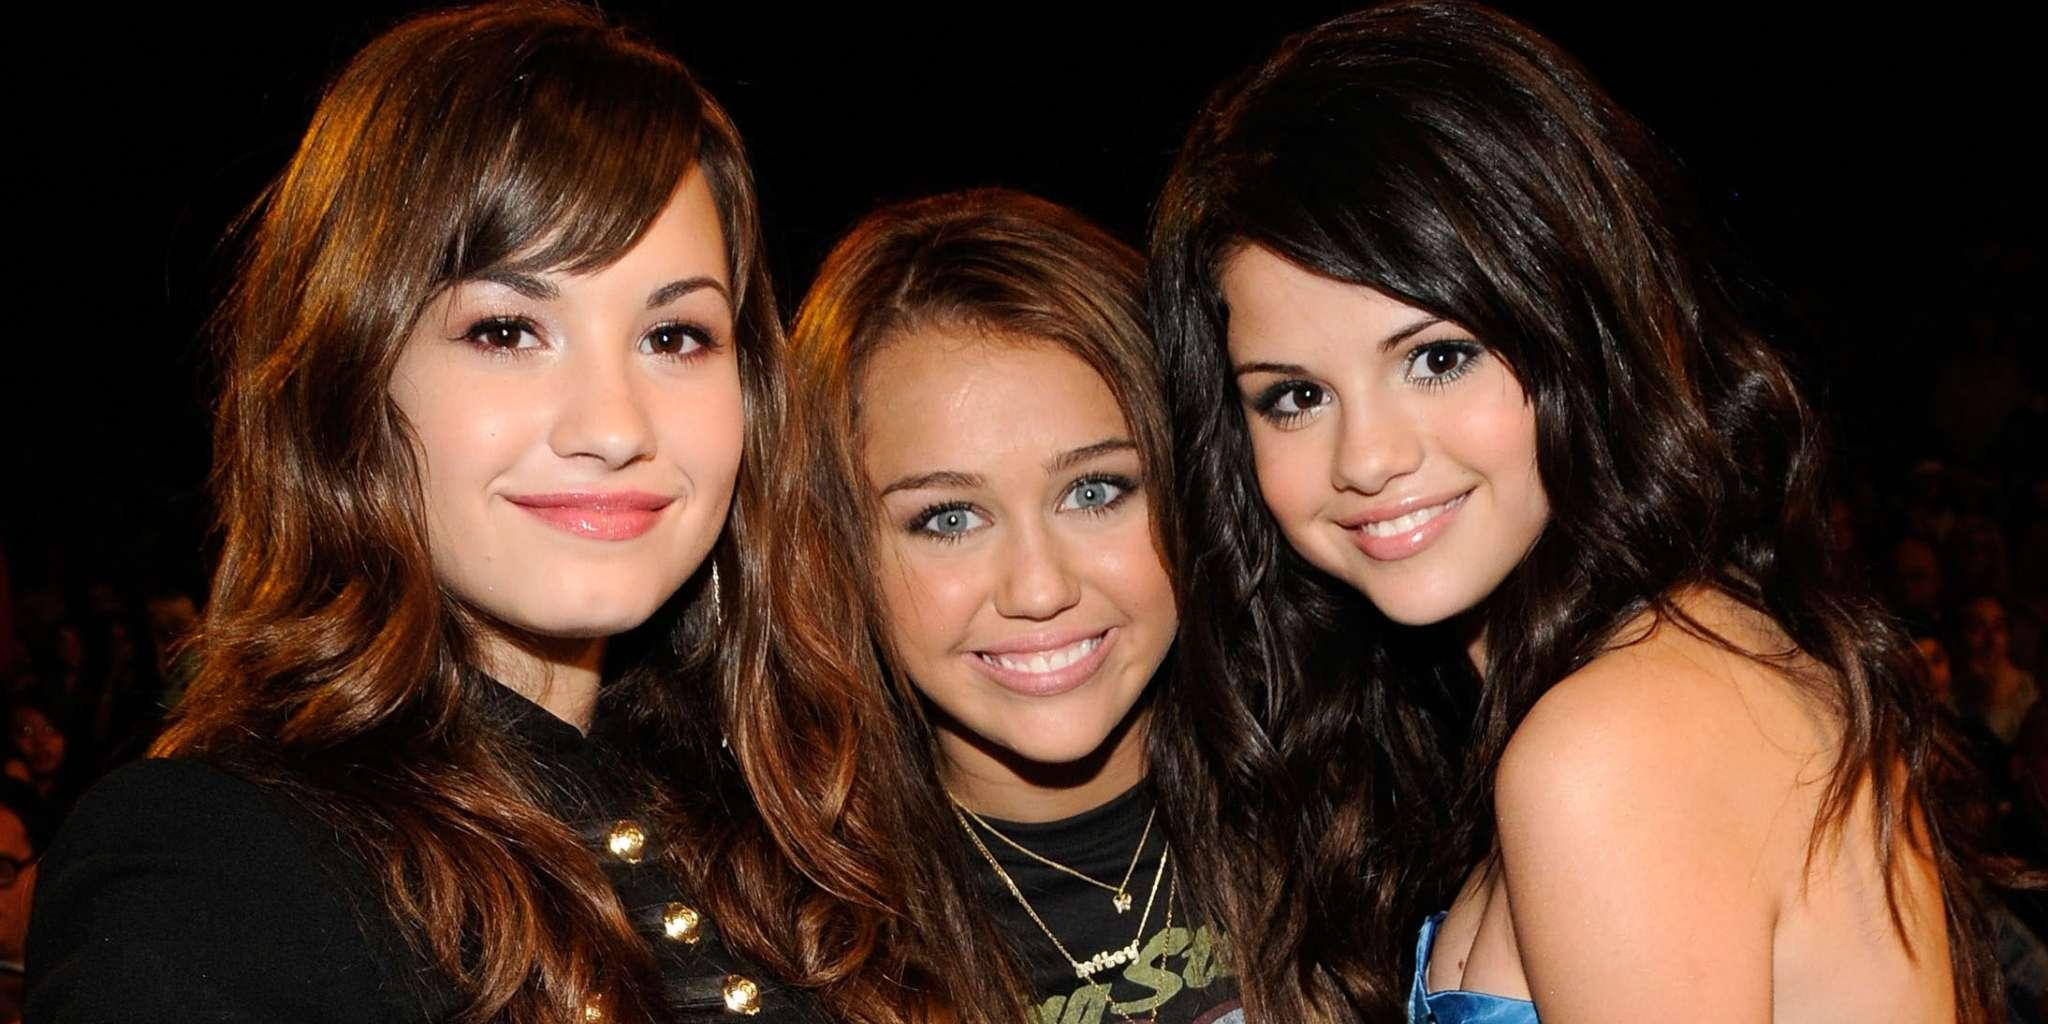 Demi Lovato Says She And Selena Gomez Are No Longer Friends - Miley Cyrus The Only One Out Of Her Old Disney Friends She Still Talks To!